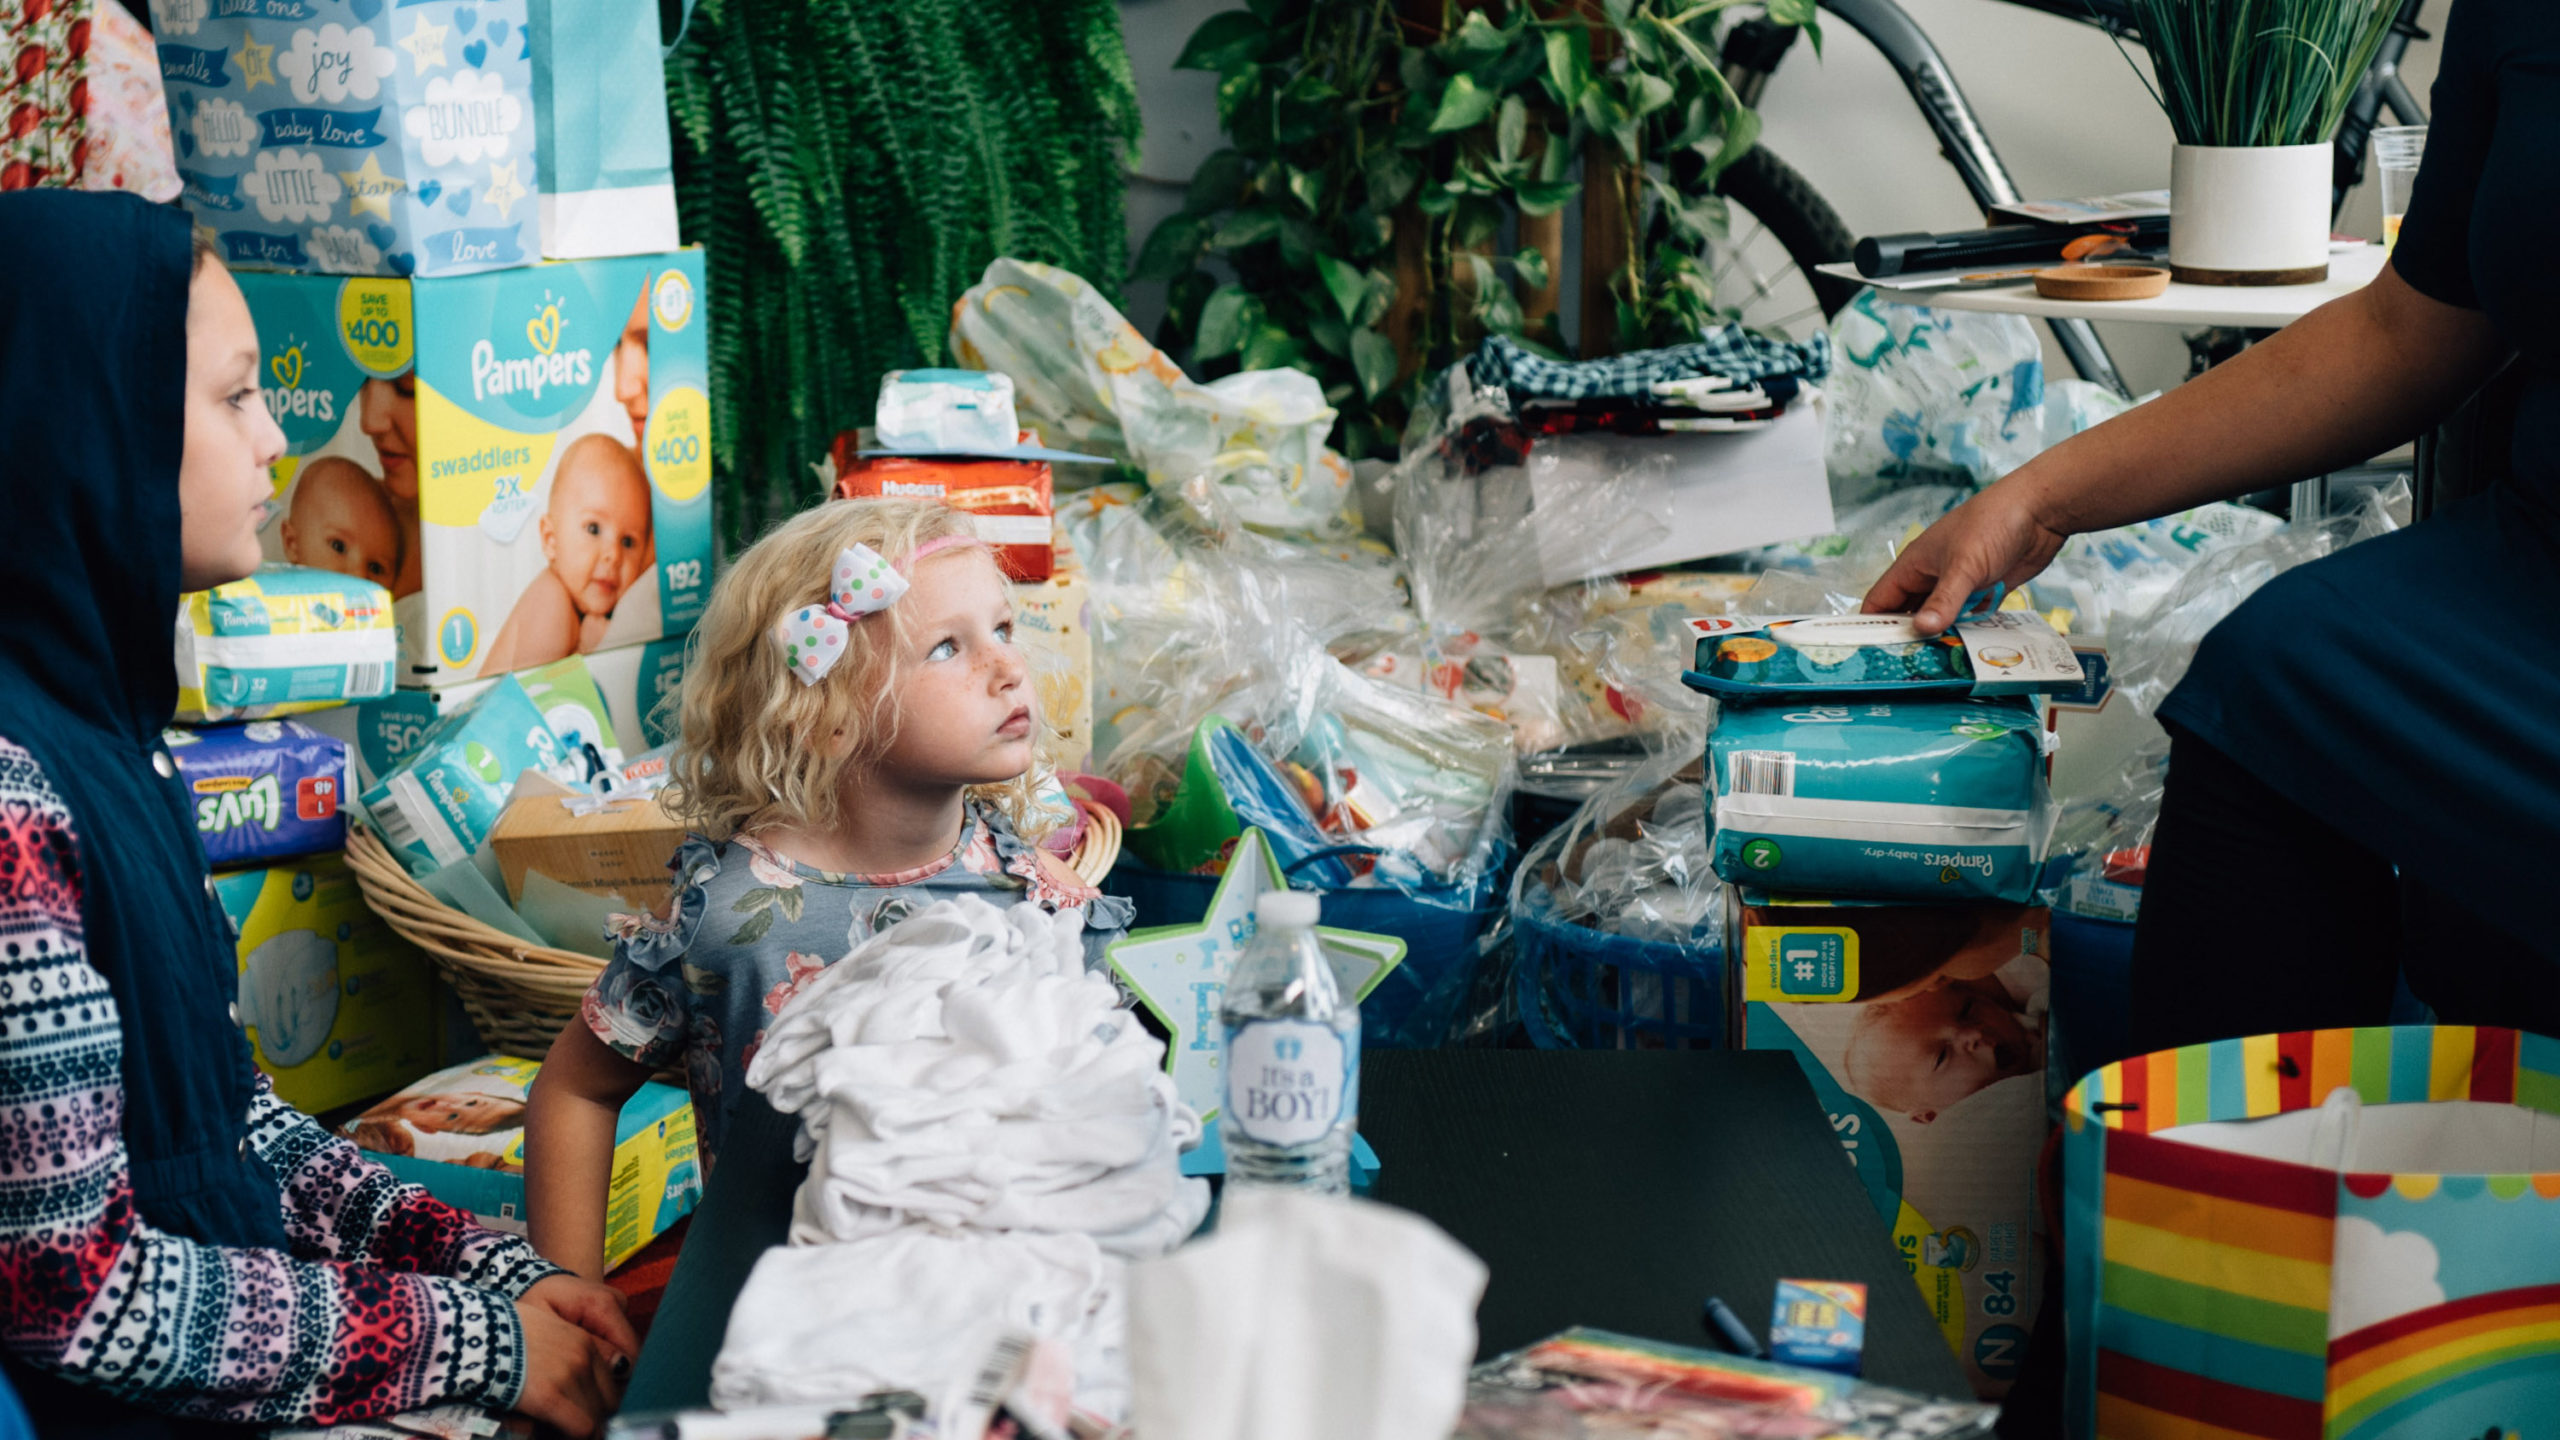 A young girl surrounded by gifts